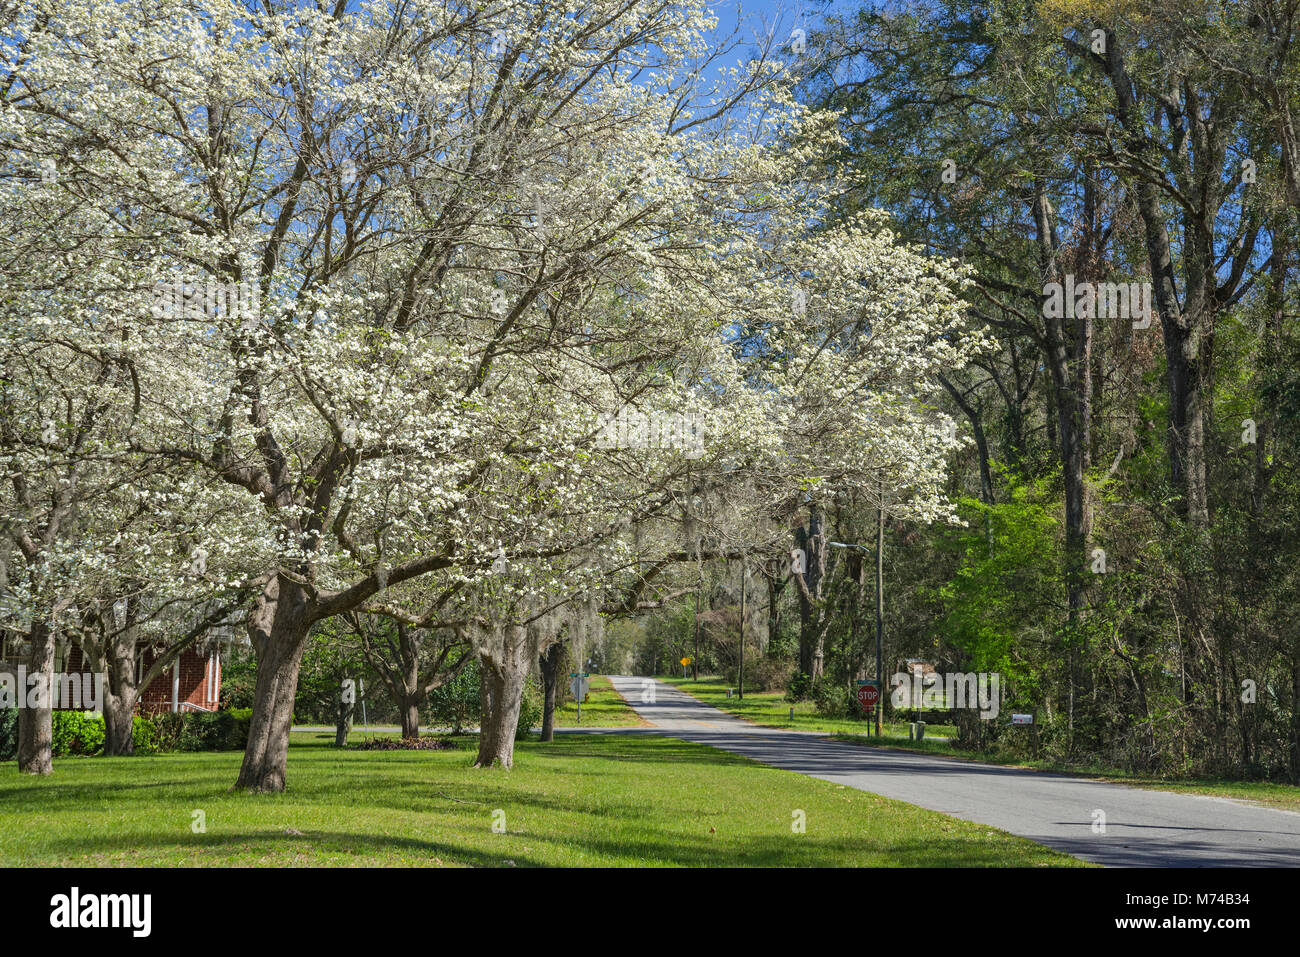 Dogwood Trees Stock Photos & Dogwood Trees Stock Images - Alamy